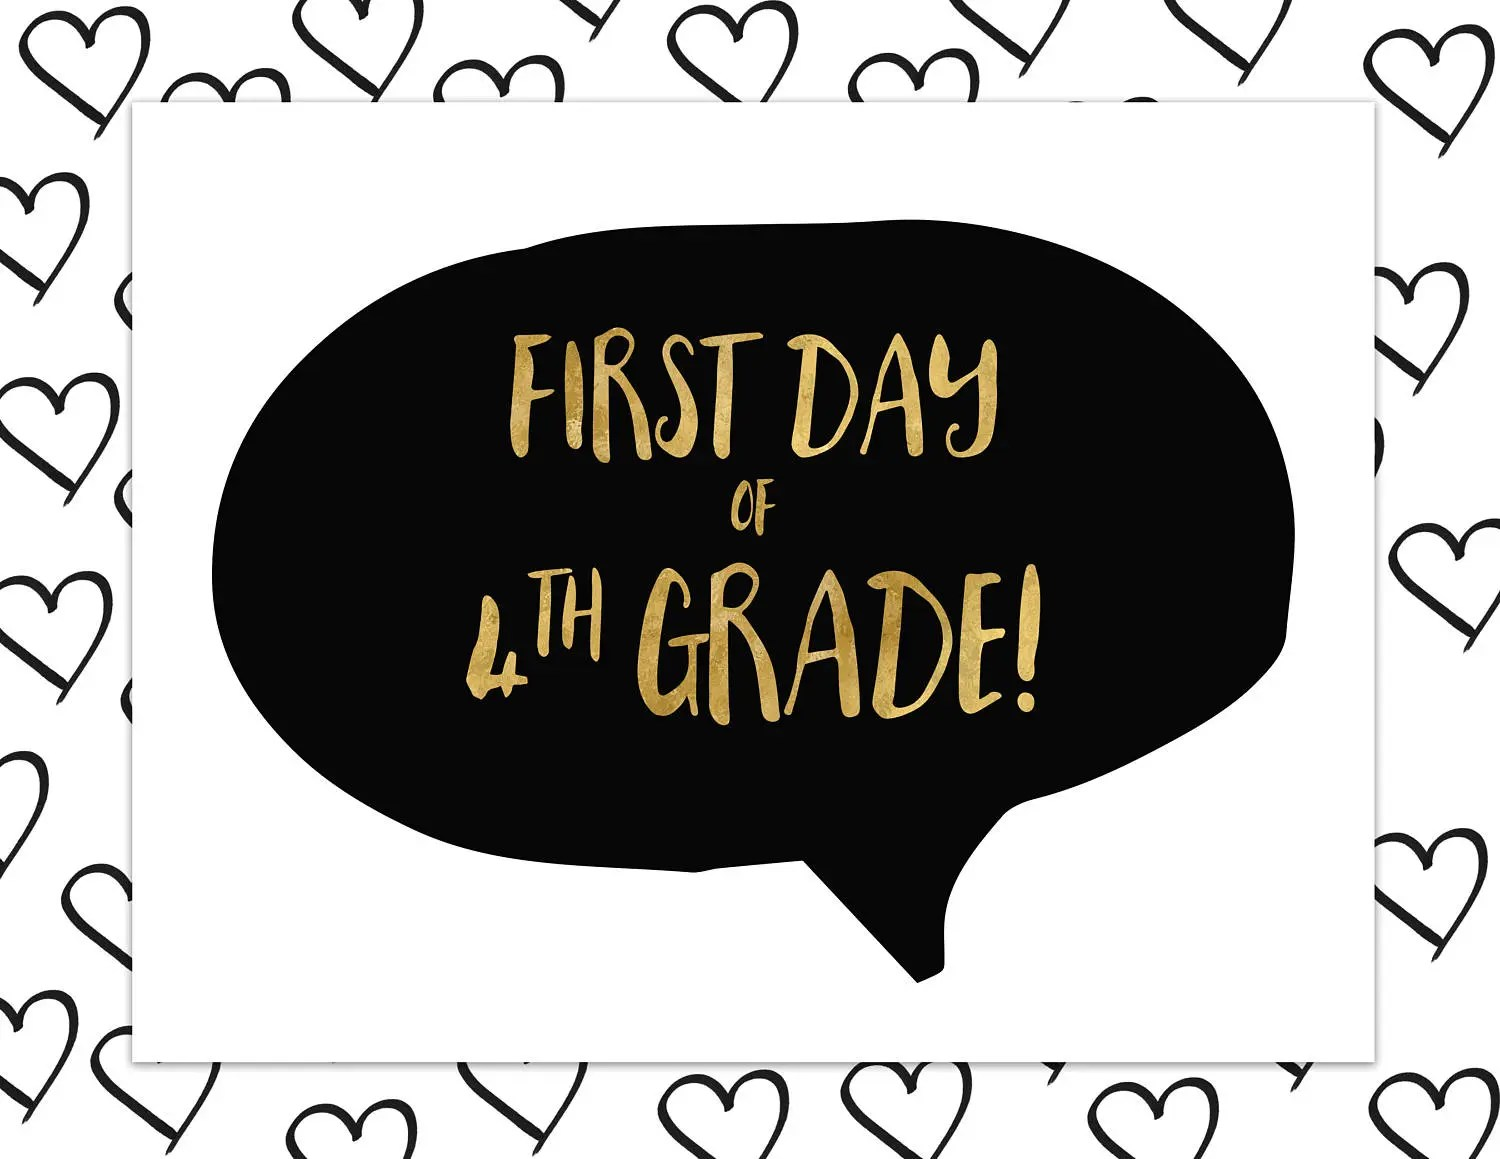 First Day Of Fourth Grade Sign First Day Of School Sign